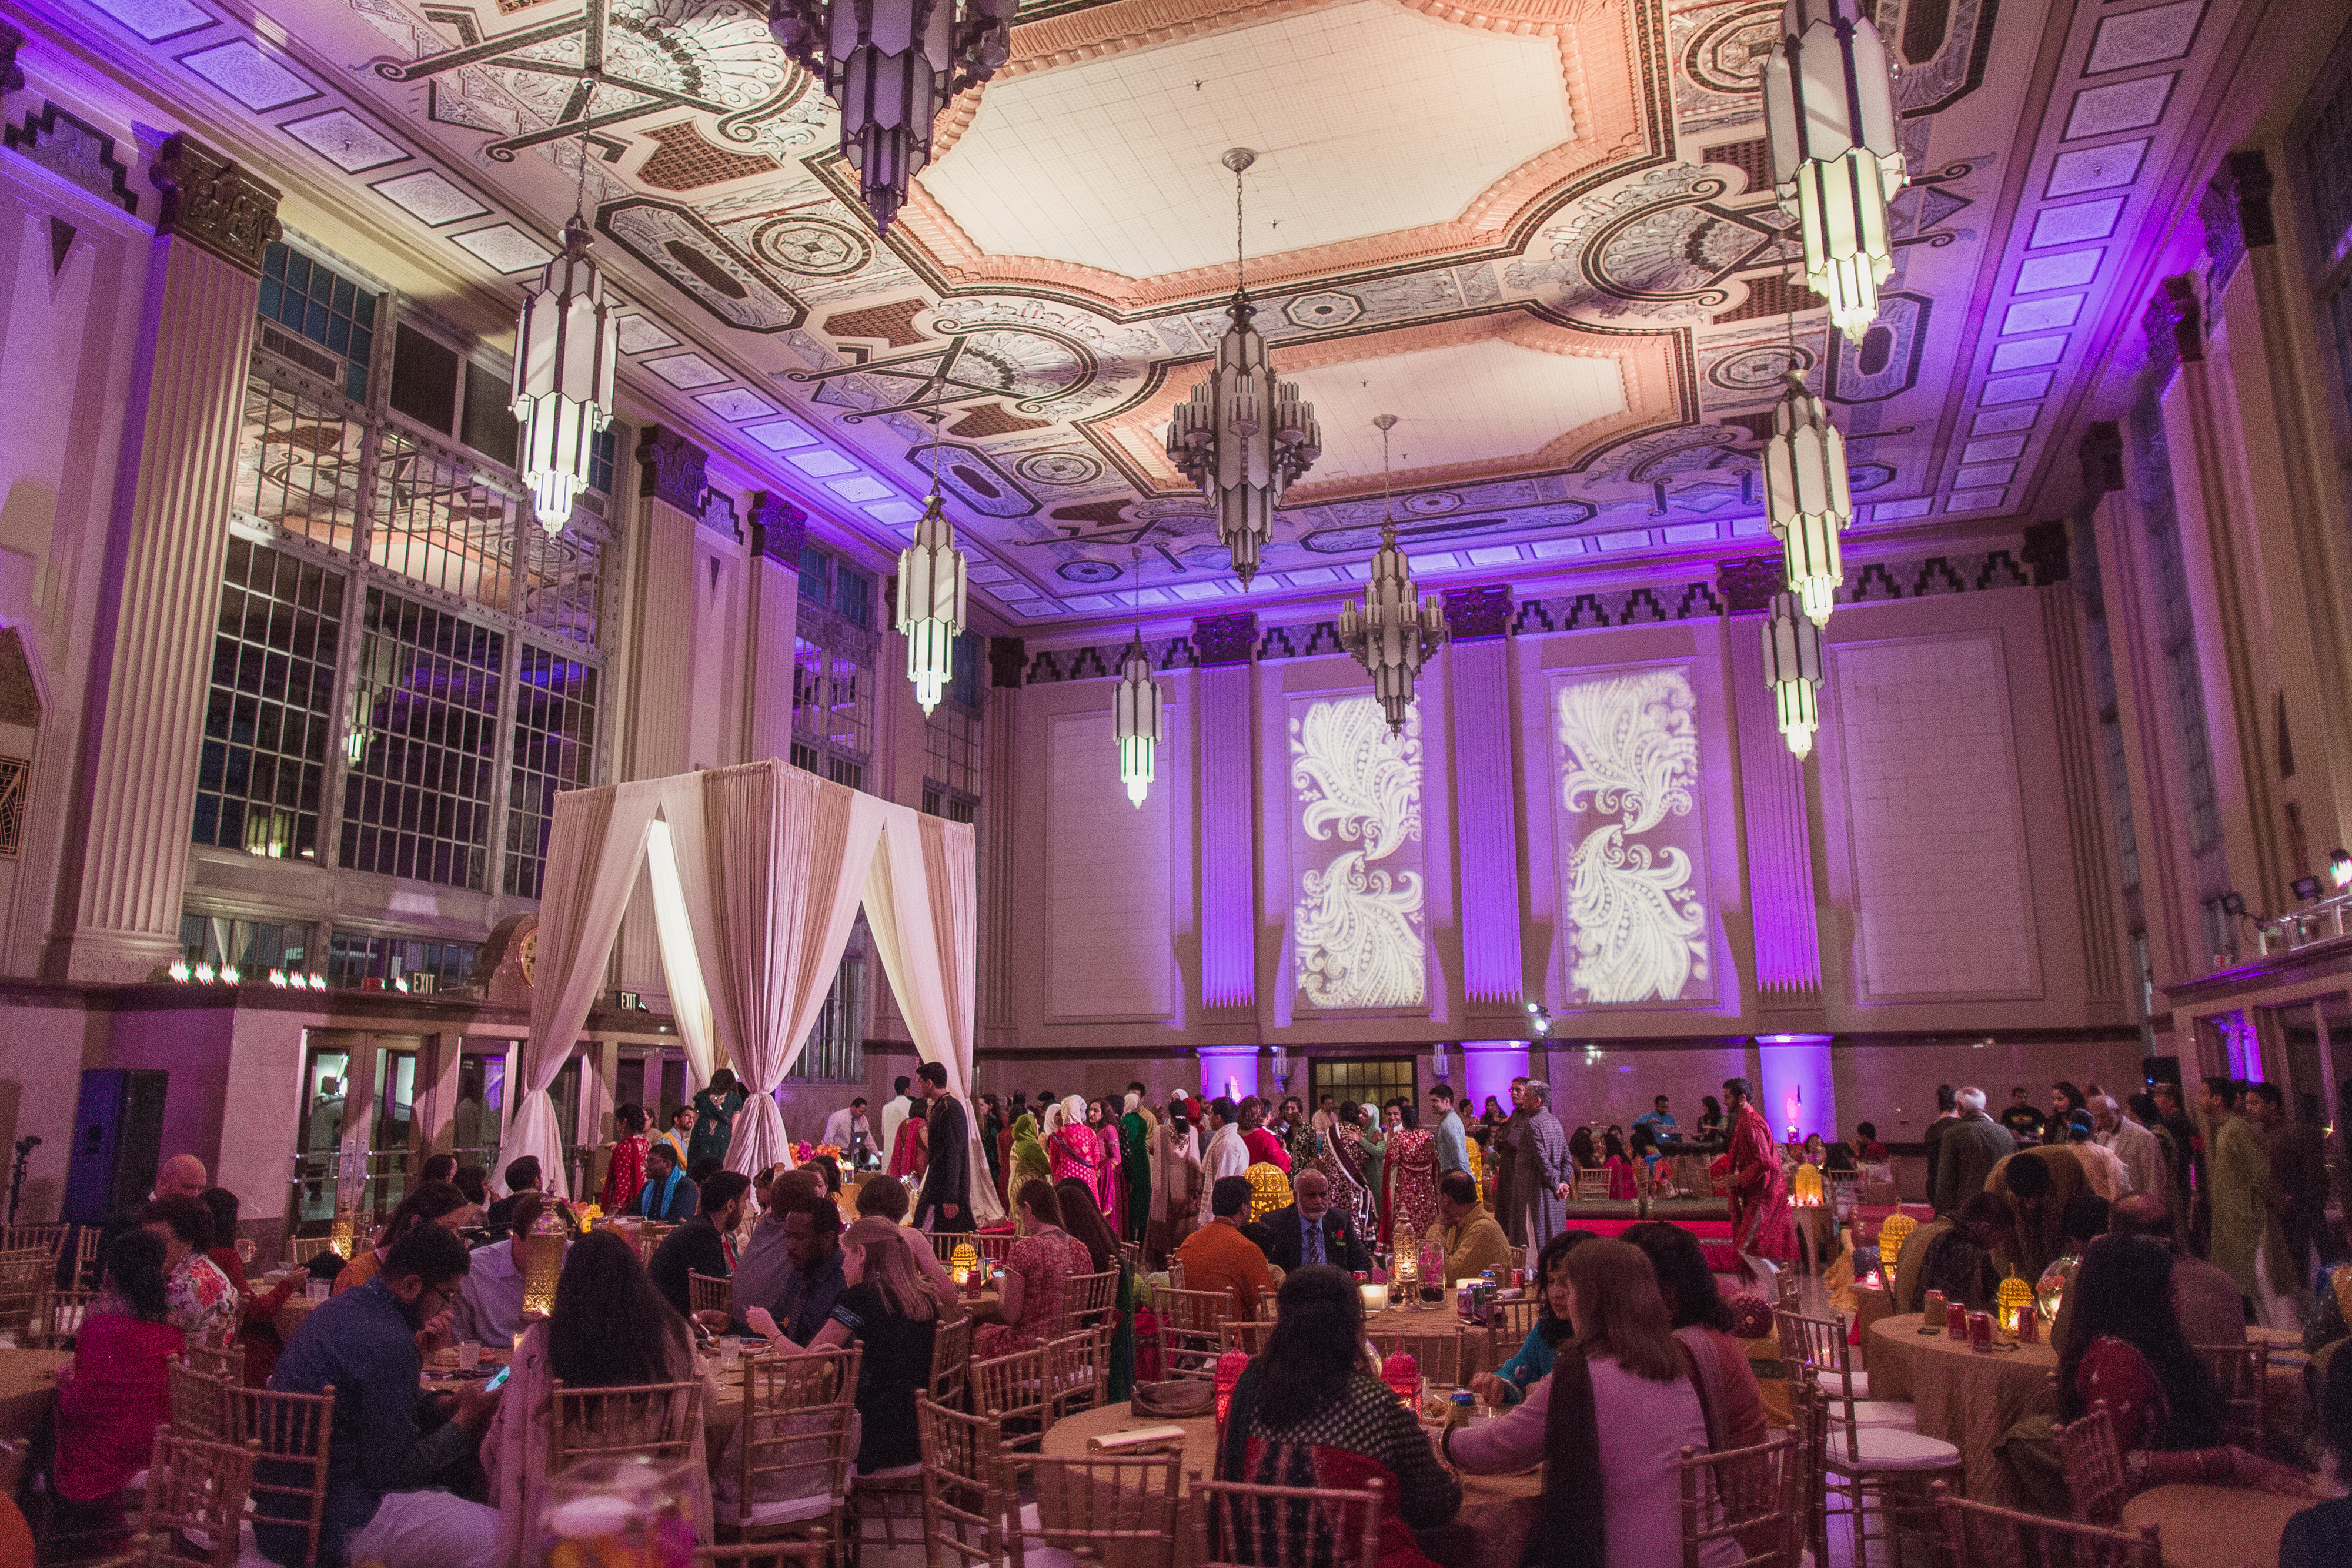 Go Beyond with pattern projections gobos lights pattern dallas fort worth events weddings_0012